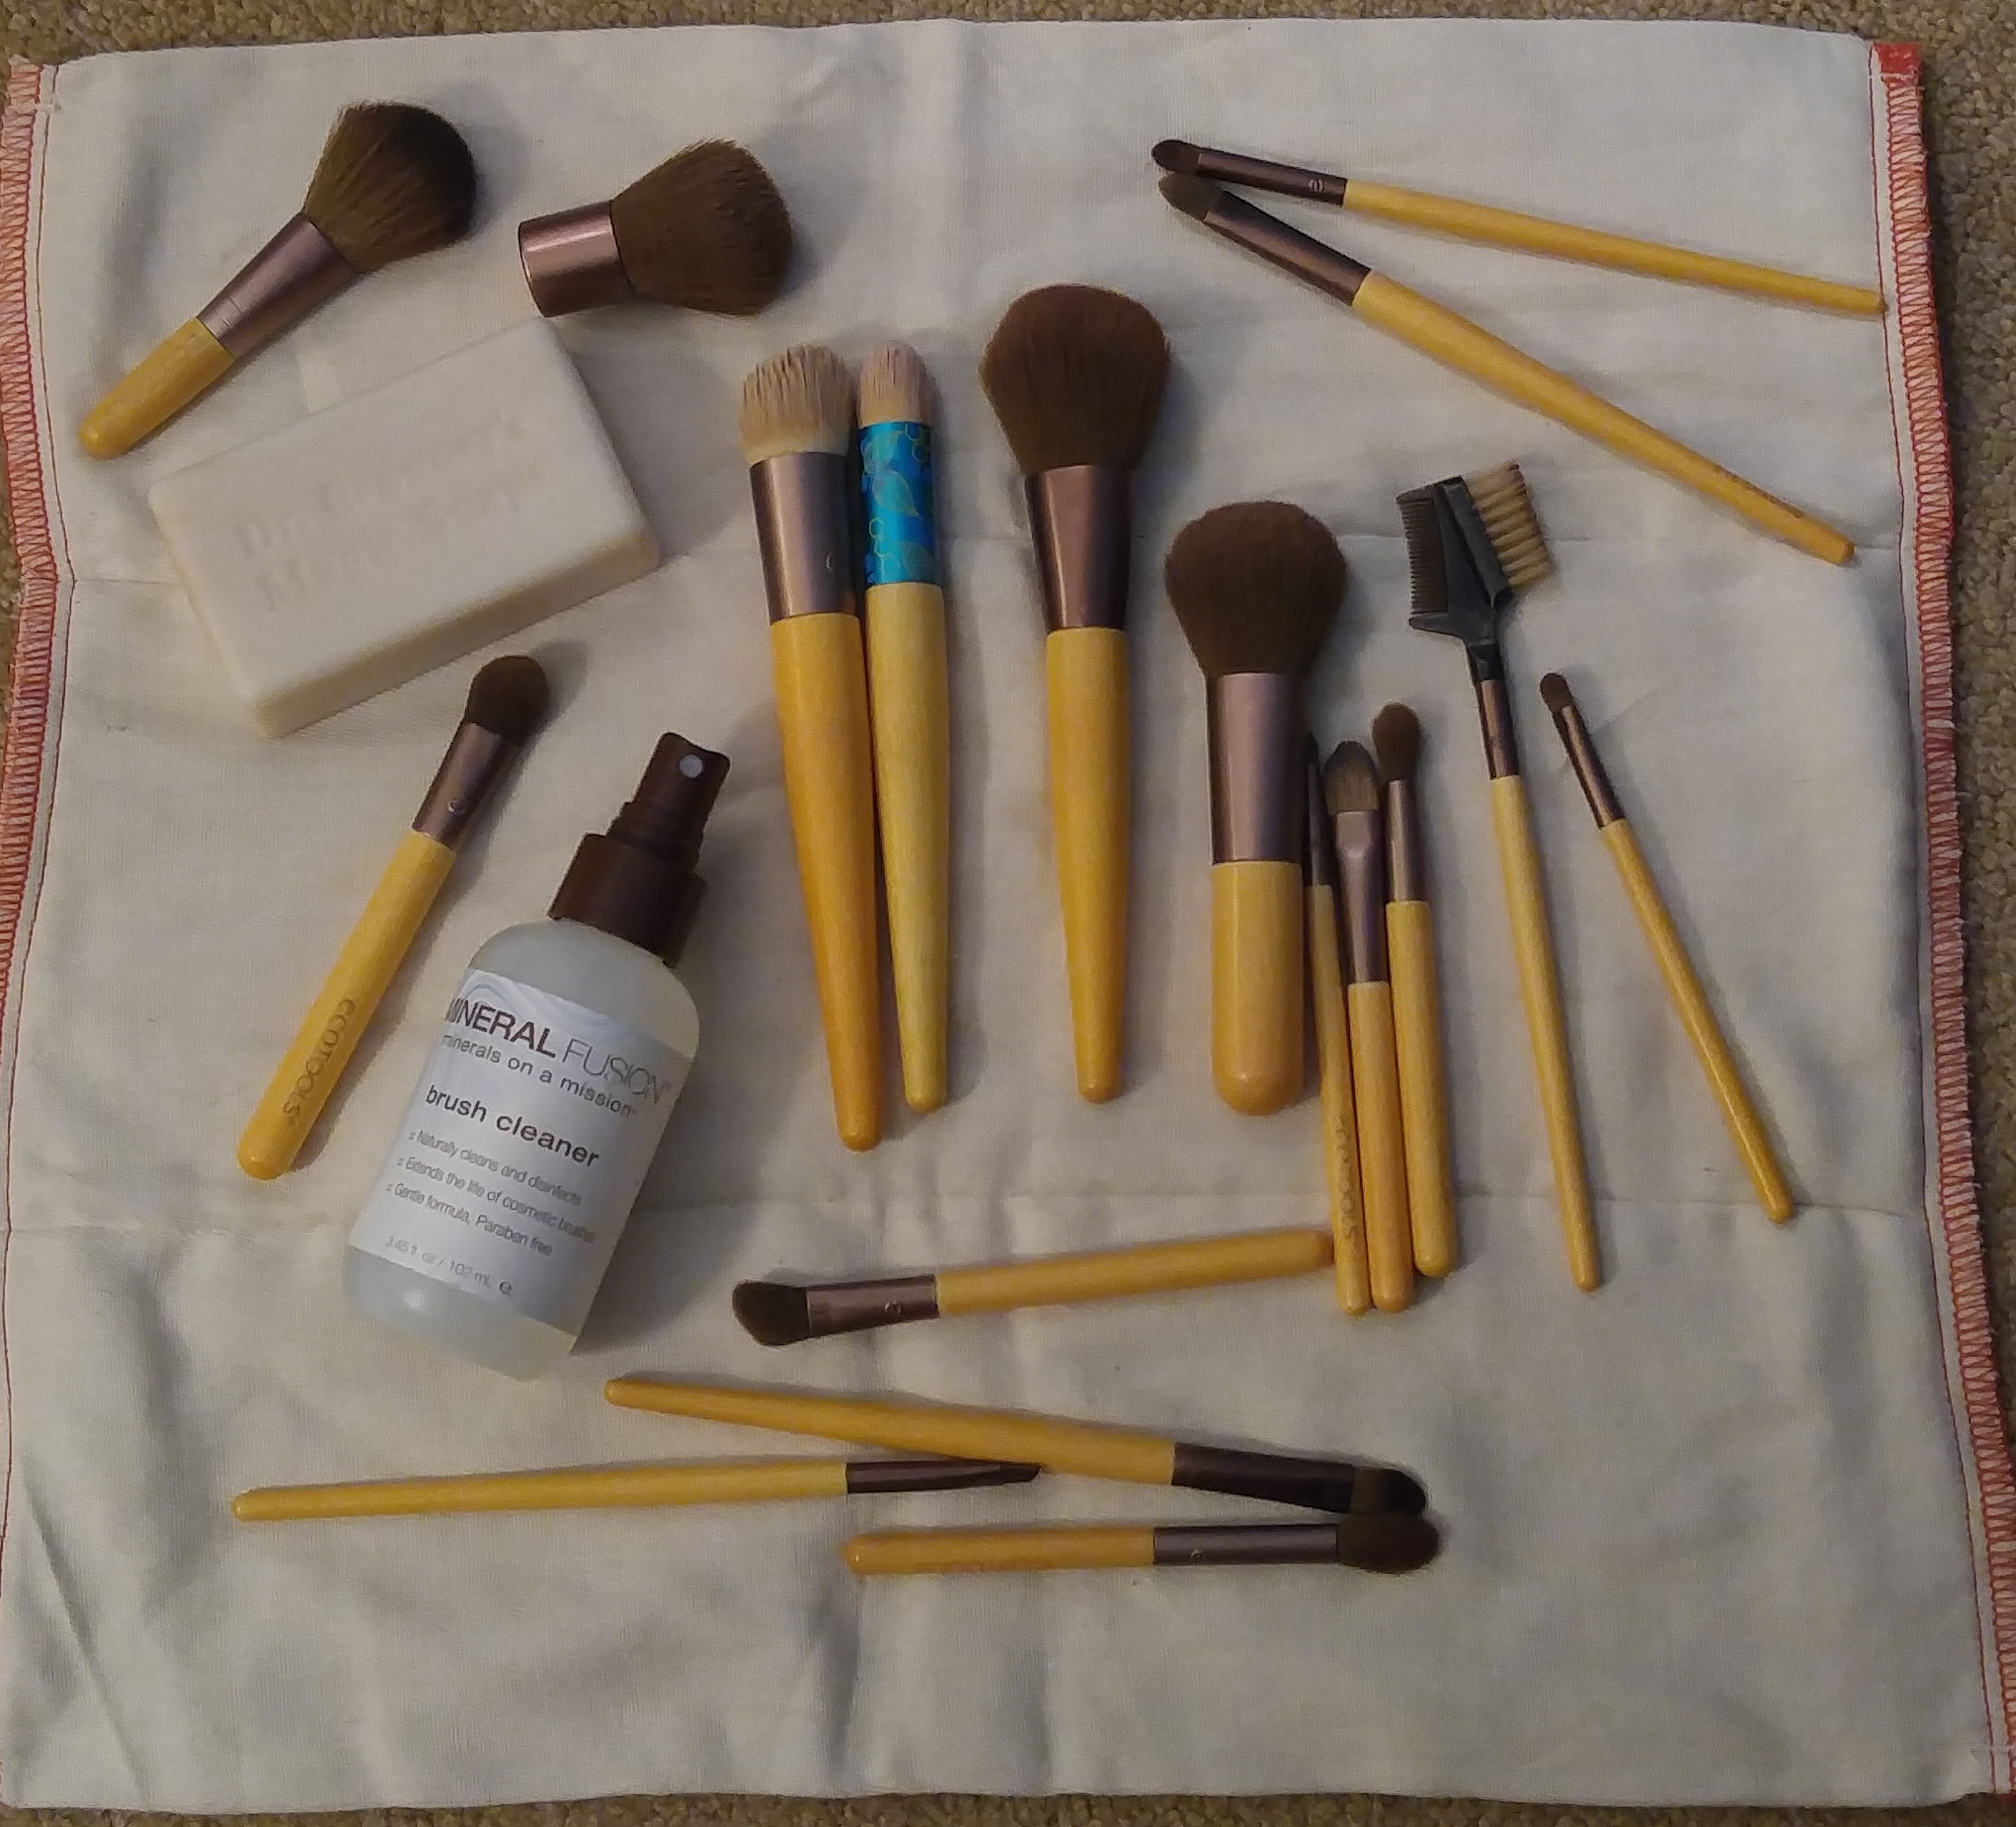 the importance of cleaning your brushes and things to use that are vegan and cruelty-free